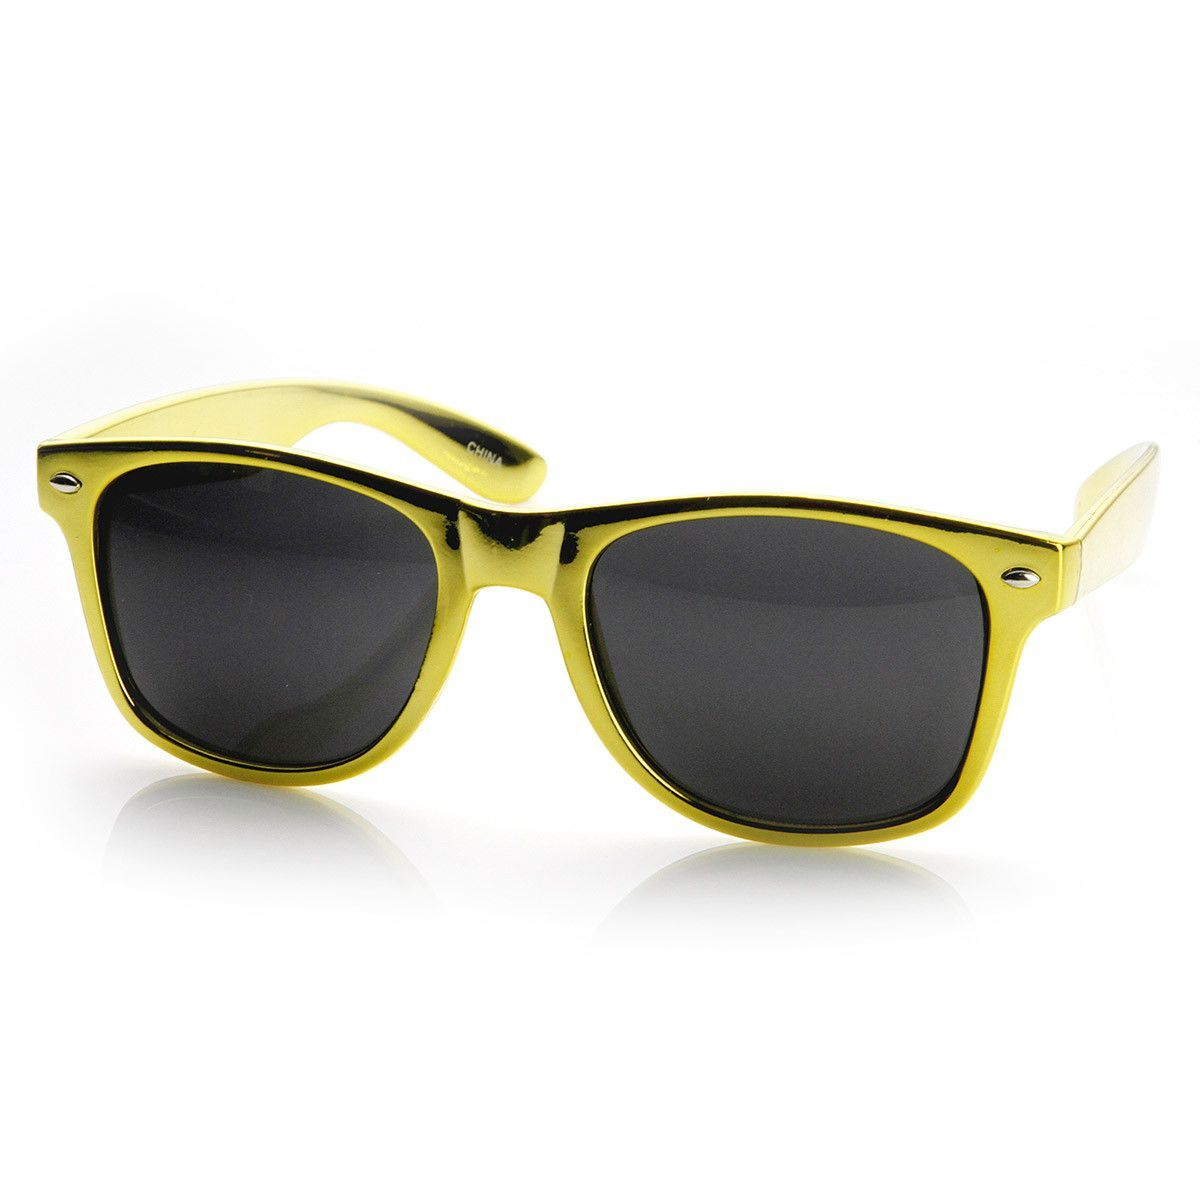 Shiny Chrome Color Foil Reflective Coat Horn Rimmed Style Sunglasses ...